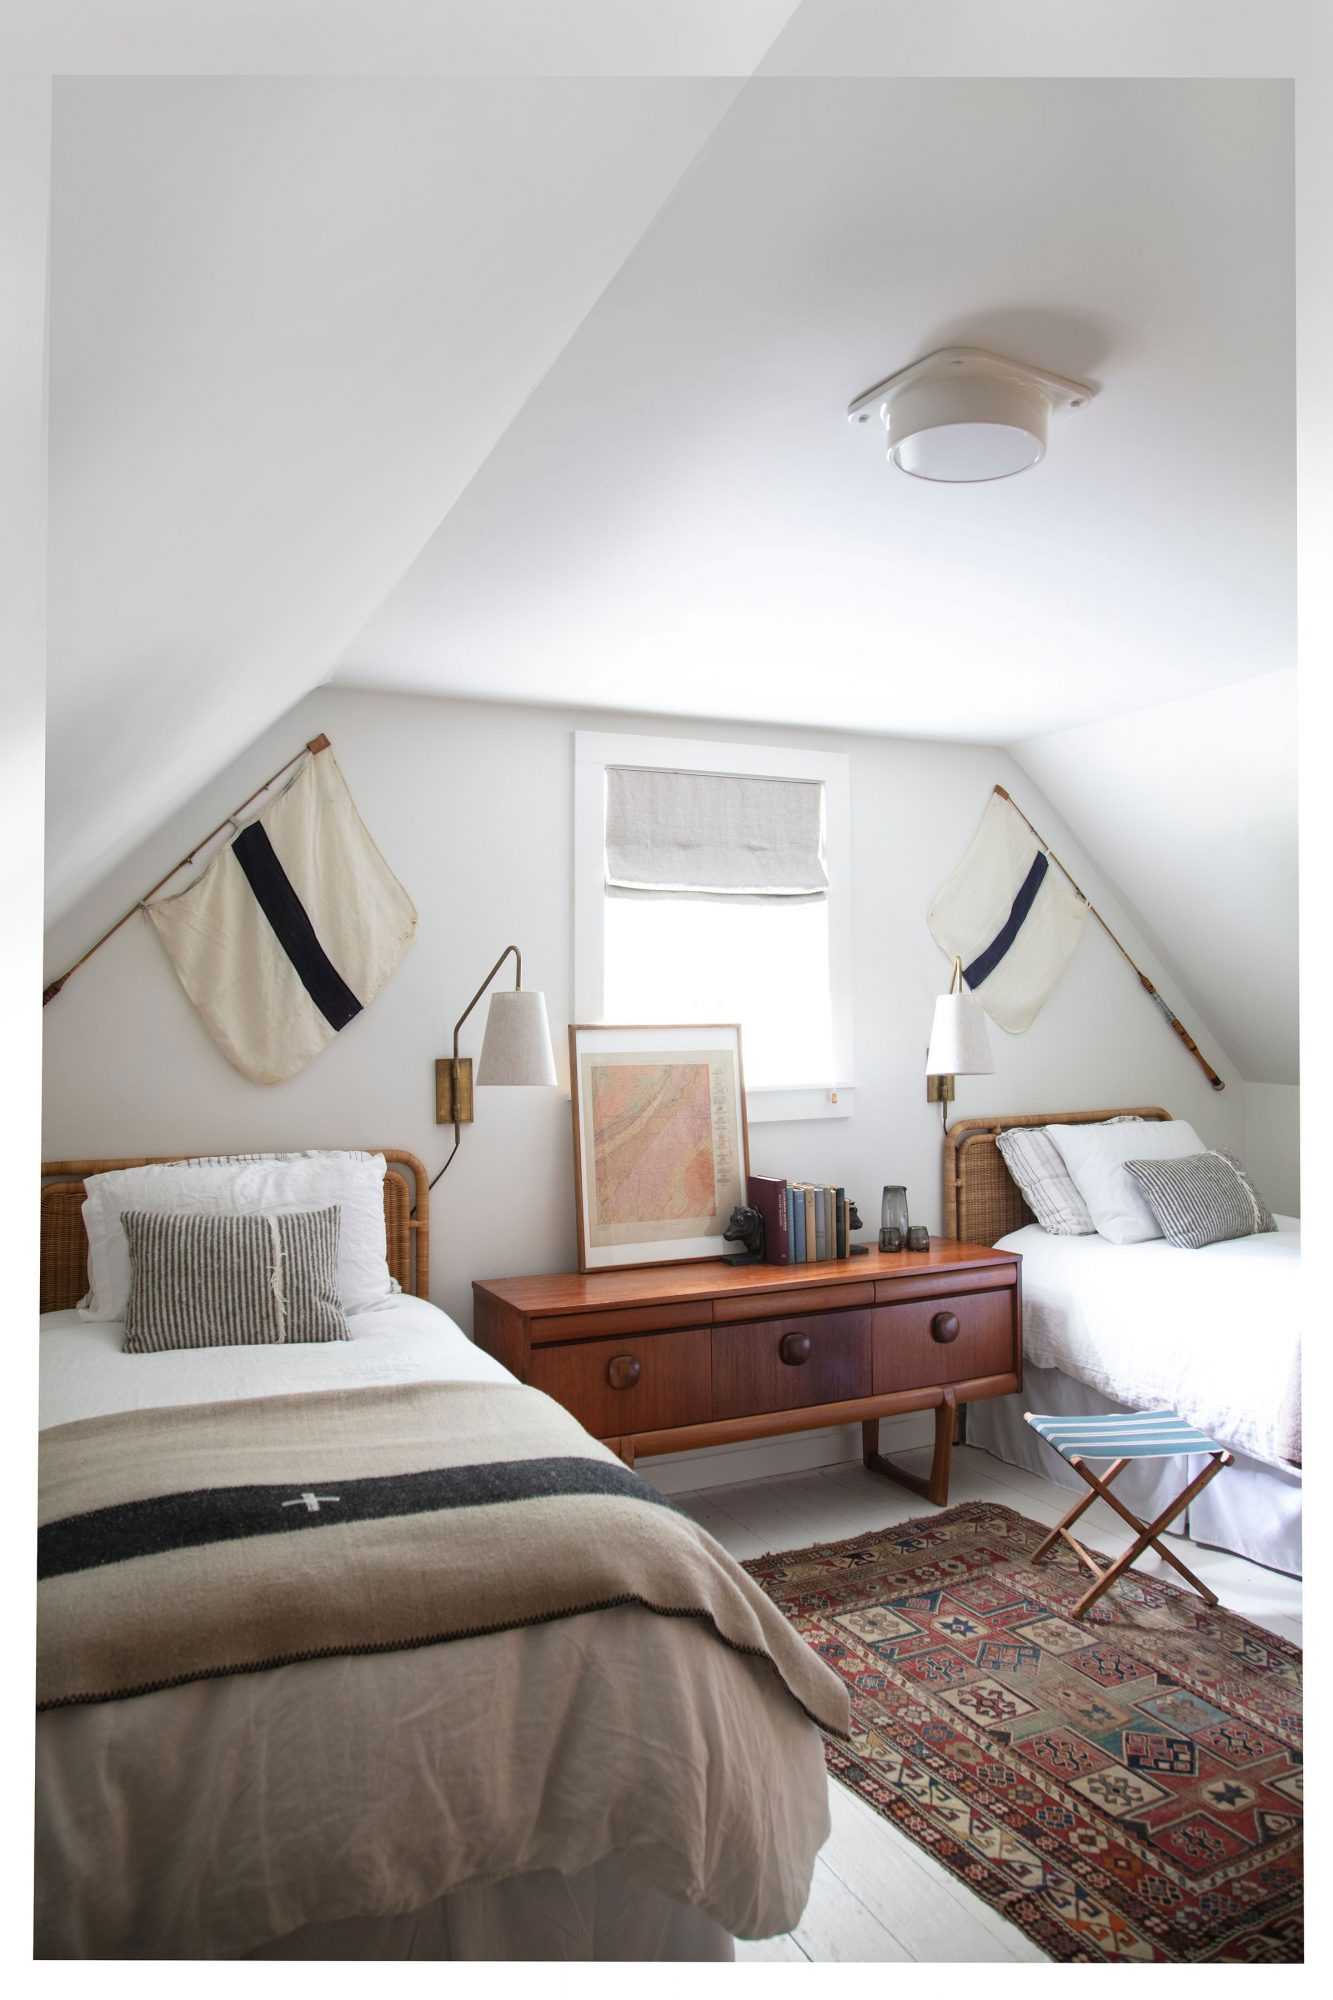 Attic Bedroom with Twin Beds and Flags